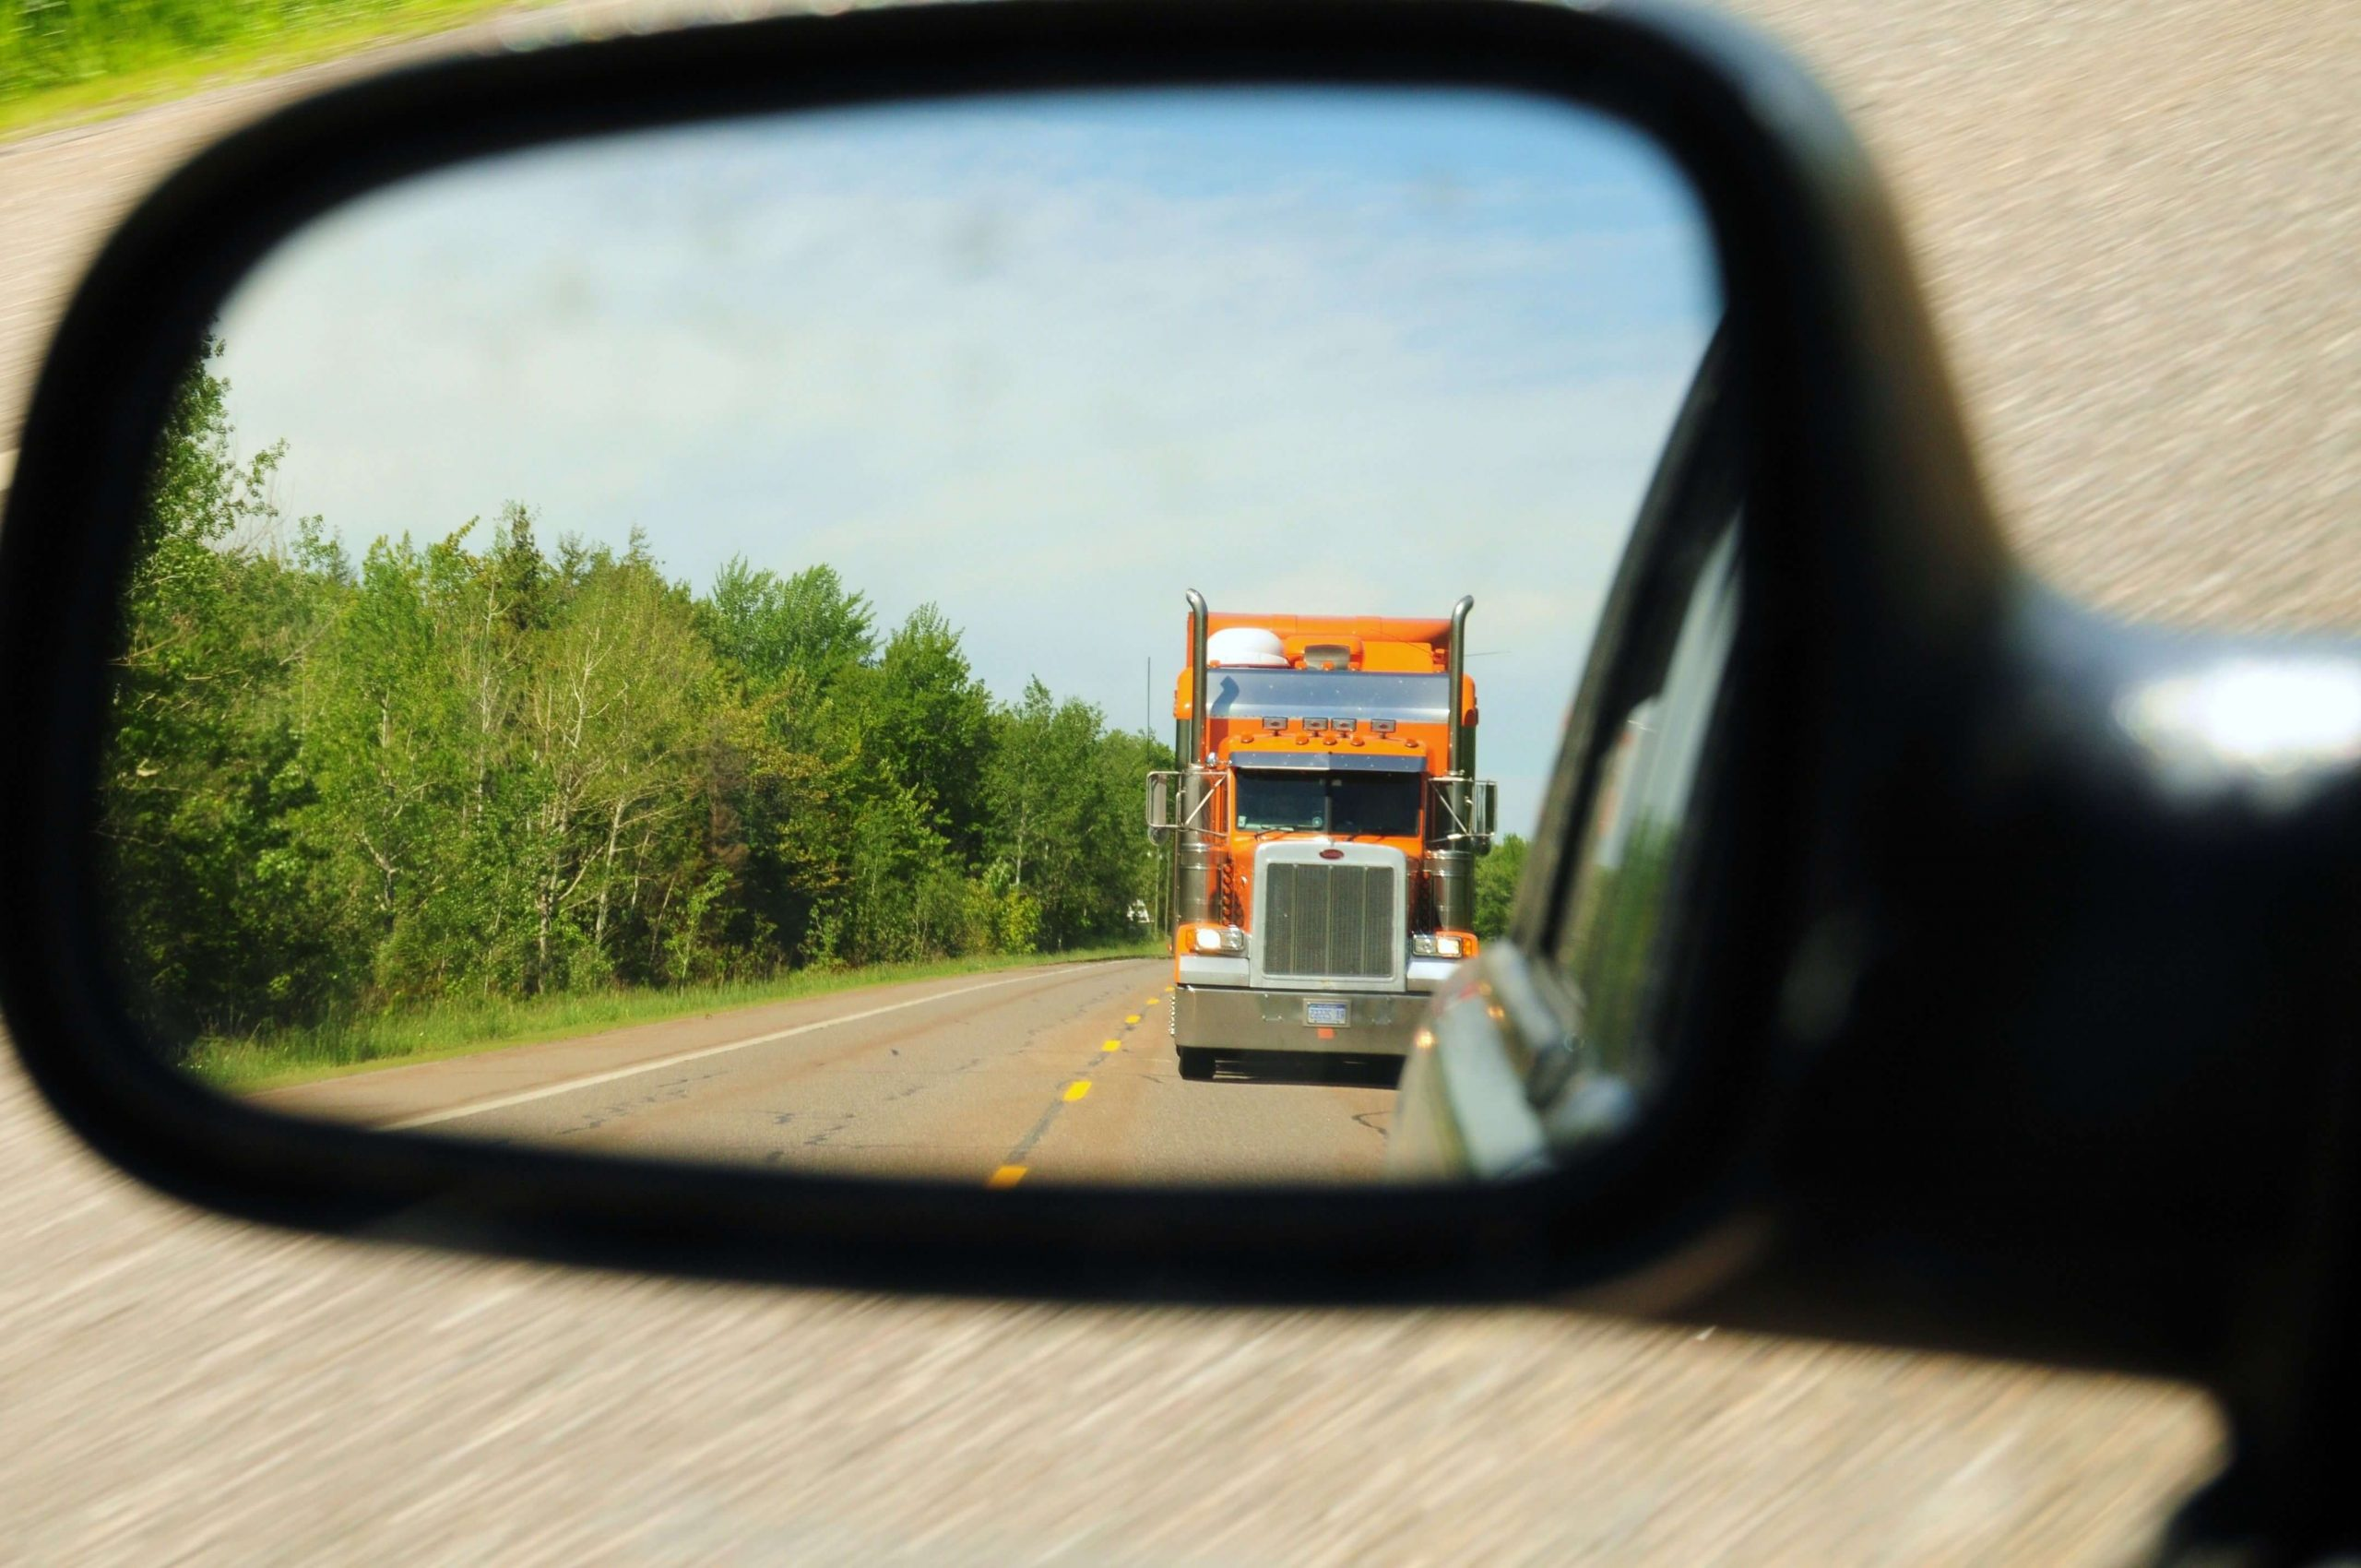 Try to avoid slamming your brakes uncessarily, both as a general motorist and as a trucker.